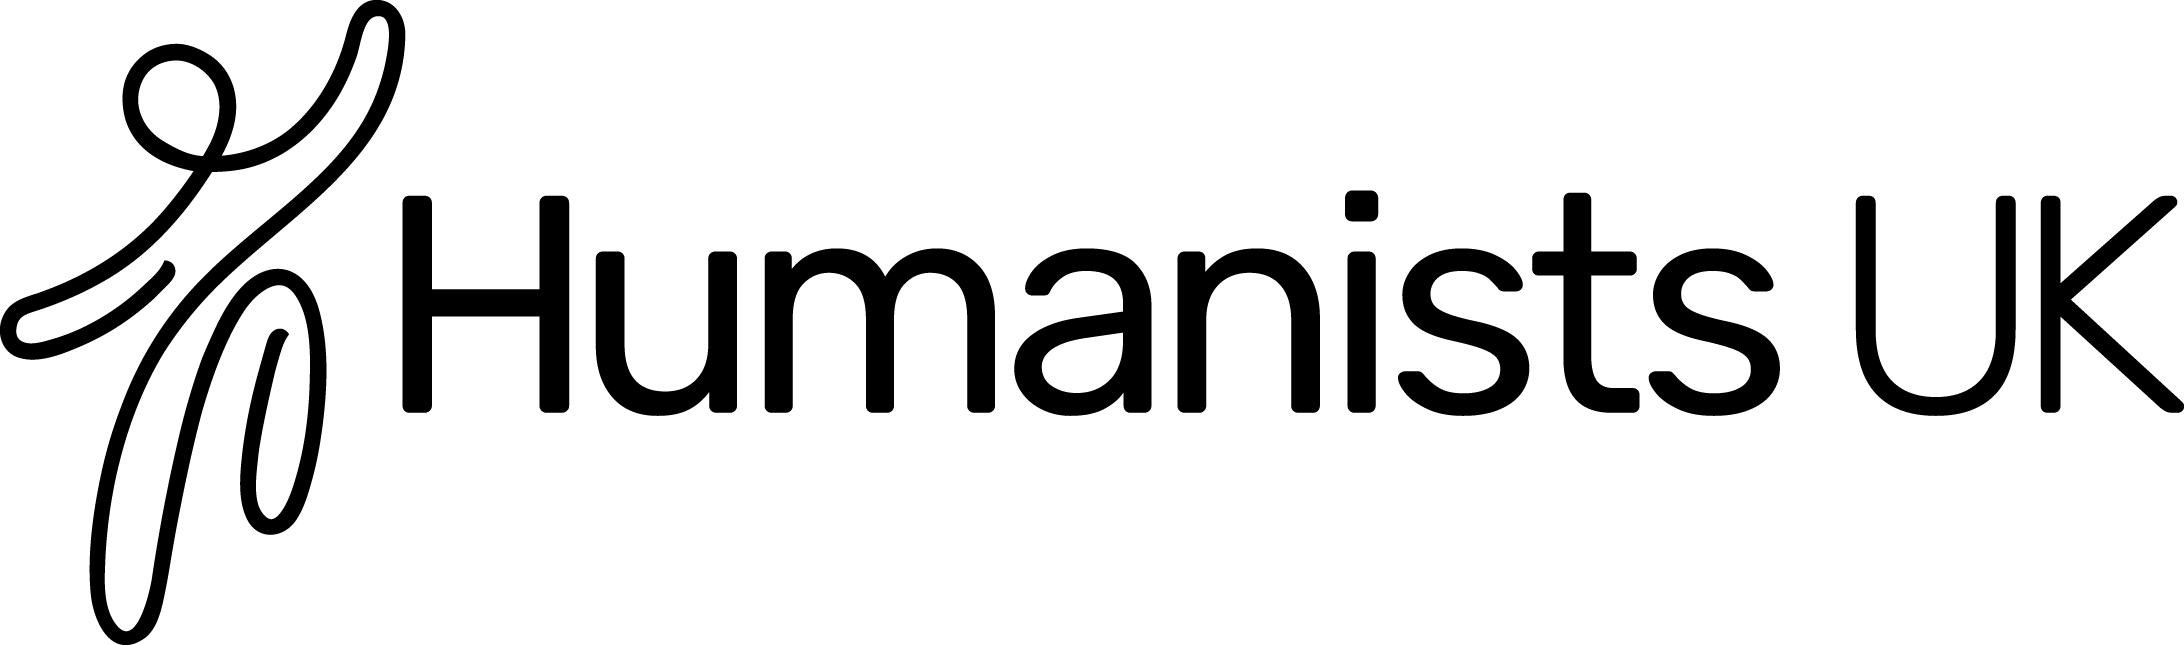 Humanists_logo_BLACK_AW.jpg